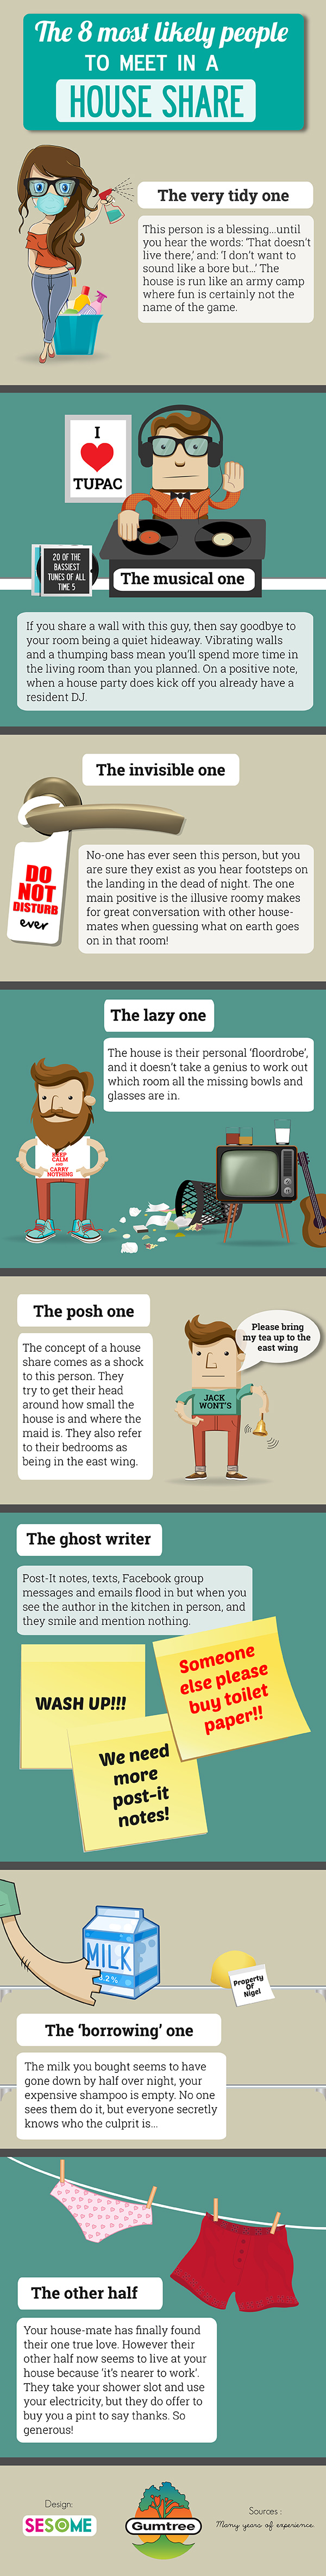 The 8 Most Likely People To Meet in a House Share